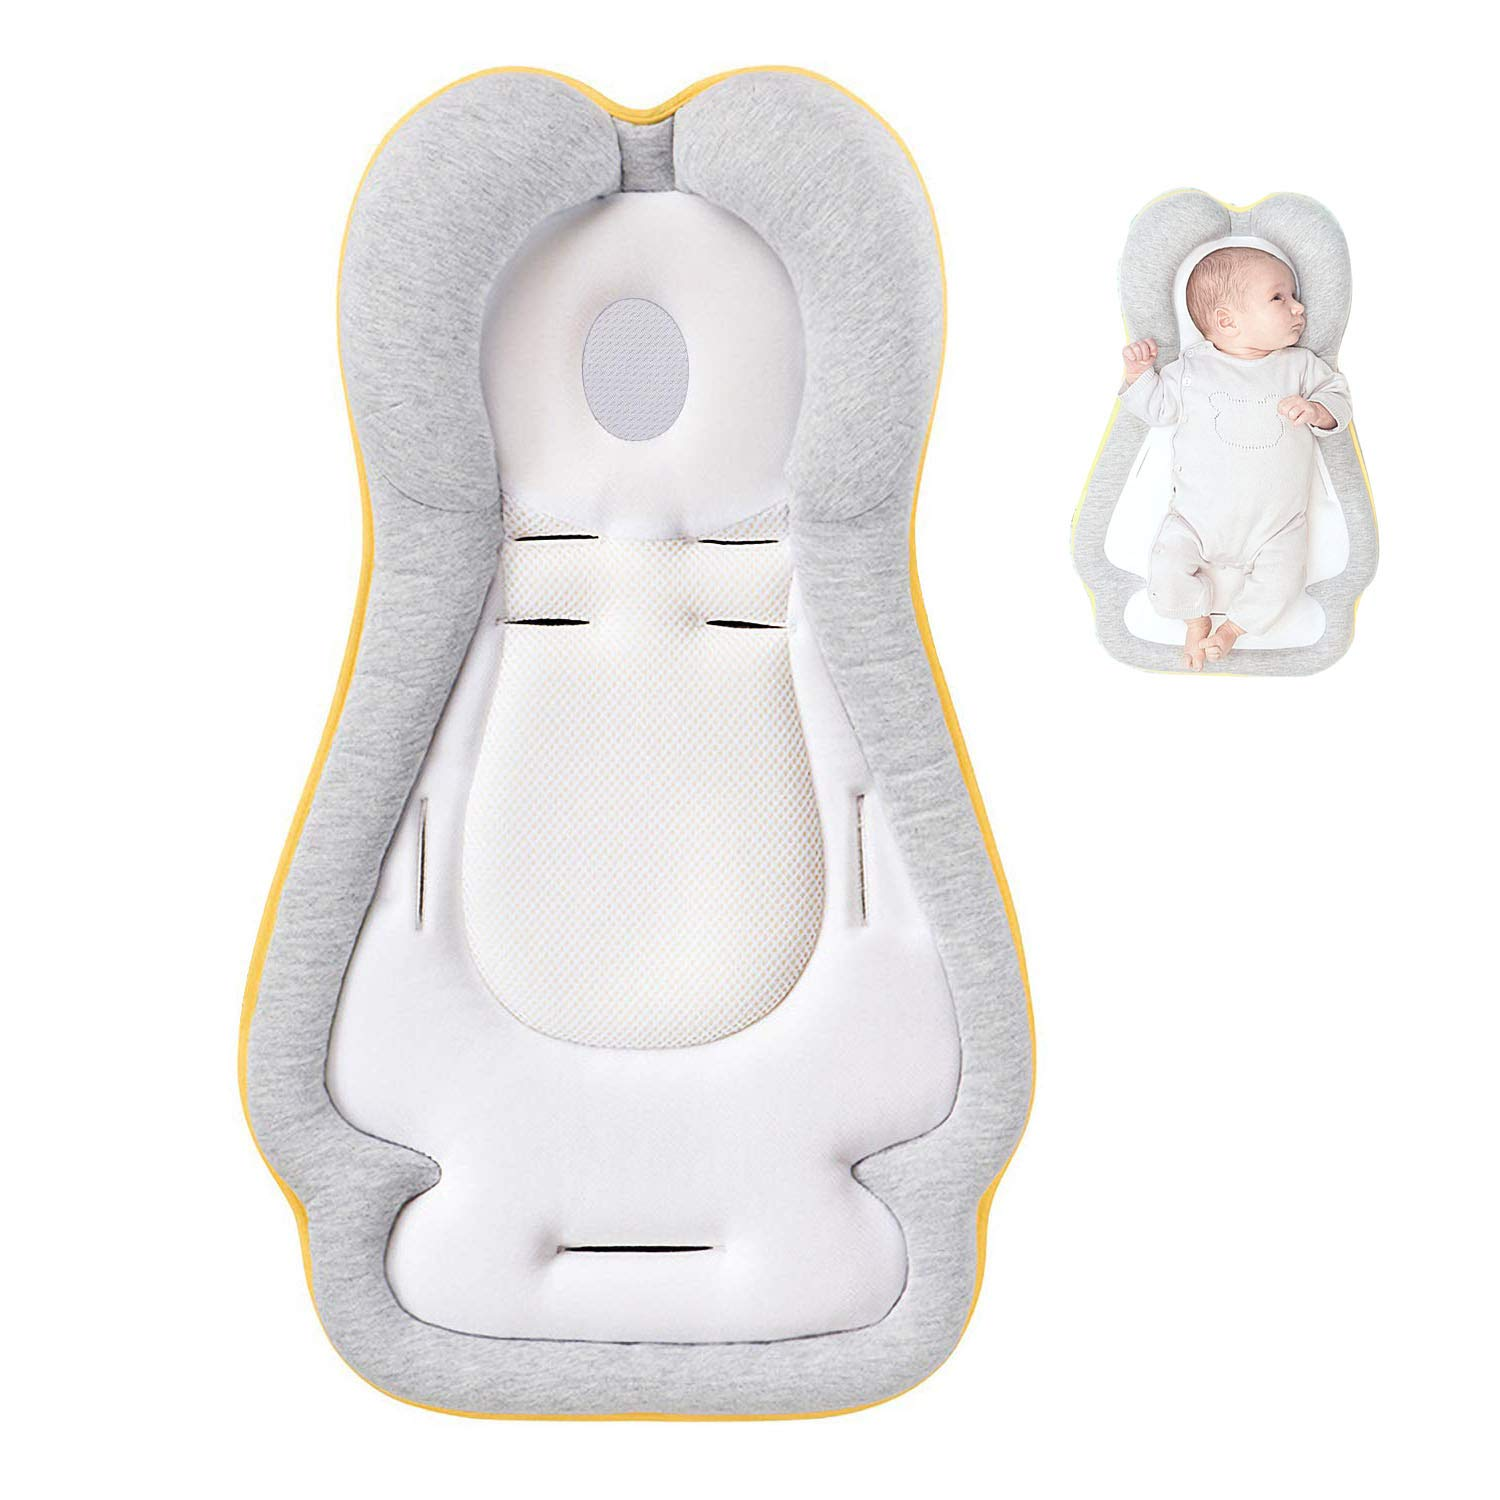 Portable Newborn Baby Head Support, Original Newborn Lounger, Baby Bed Mattress, Infant Sleep Positioner, Ultra-Comfortable Baby Pillow for Infants & Toddlers.